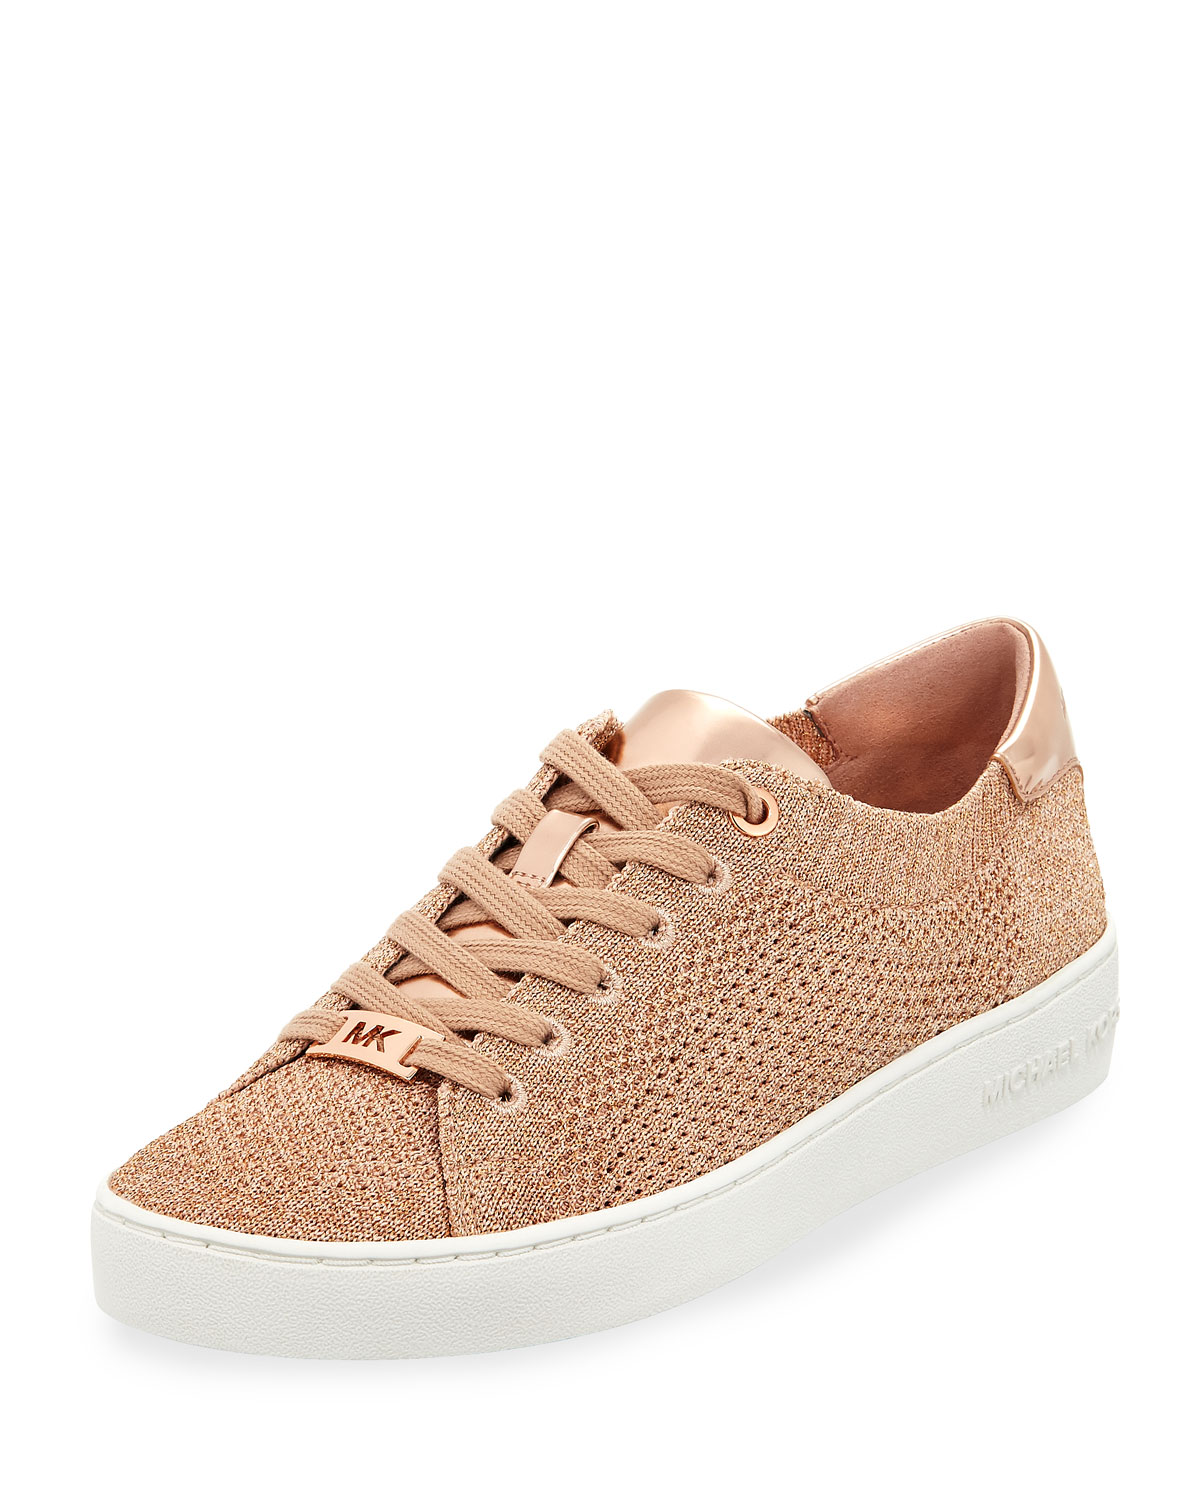 6edf58c1068b5 MICHAEL Michael Kors Skyler Metallic Lace-Up Low-Top Sneakers ...